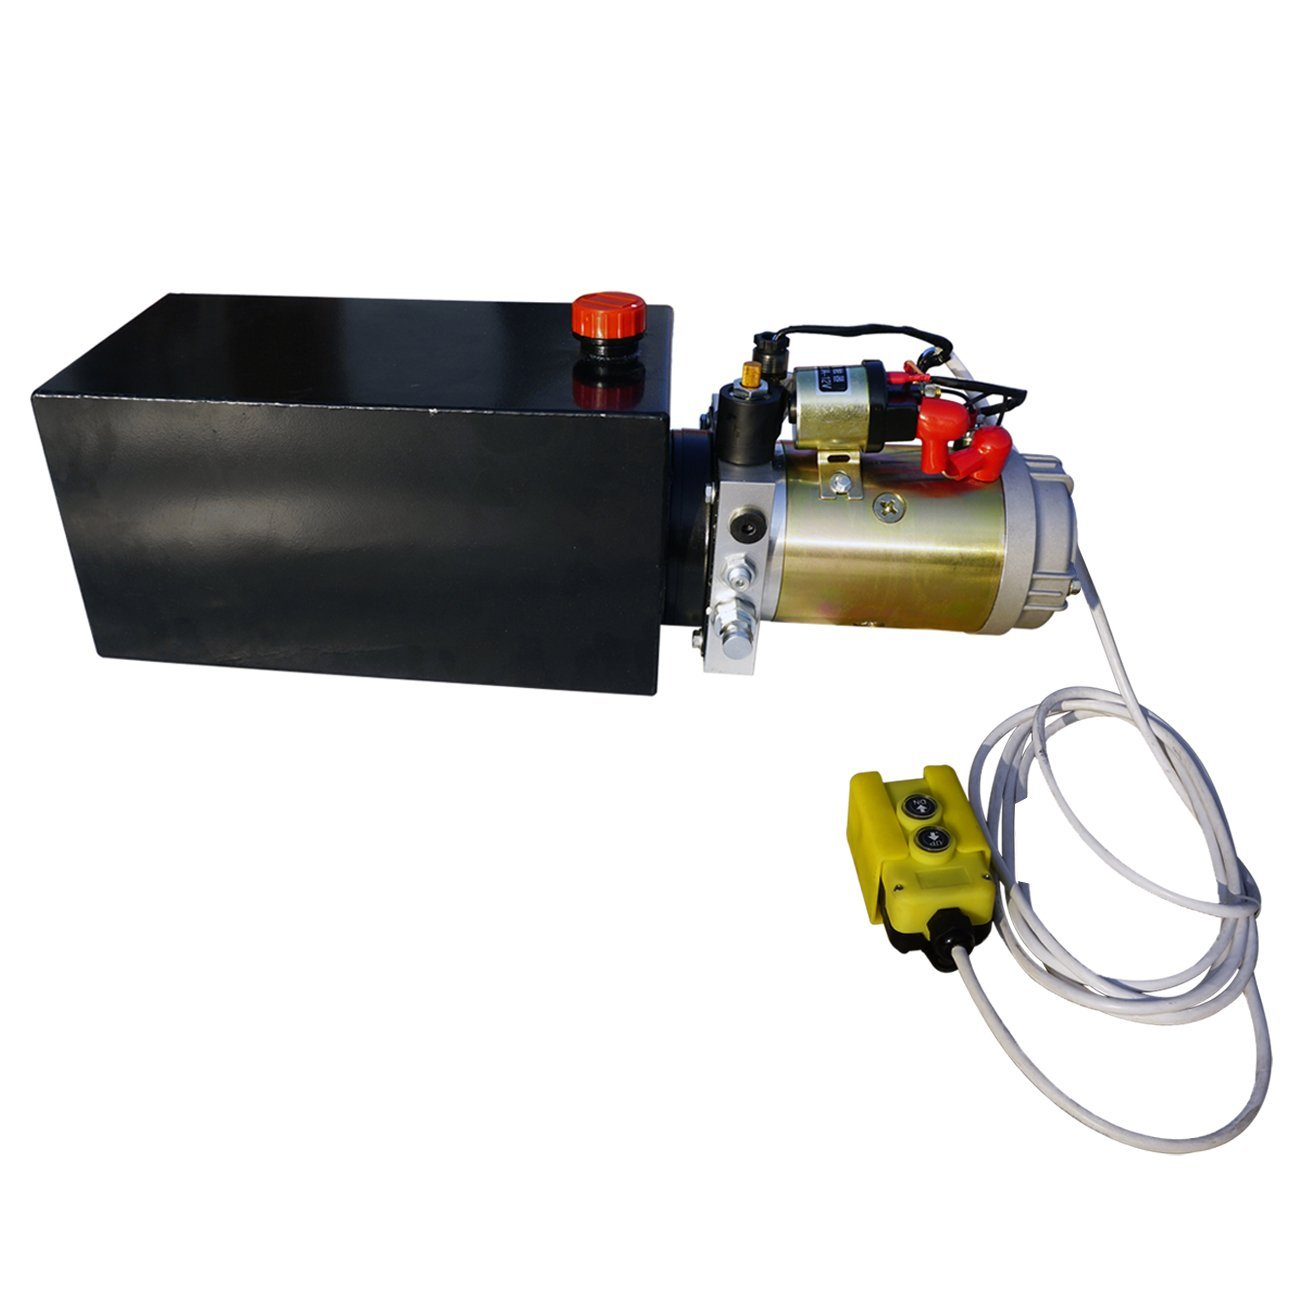 Hydraulic Pump Unit 10 Quart Single Acting Hydraulic Power 12V DC Steel Tank Hydraulic Pump Power Unit for Dump Trailer Car Lifting (10 Quart Steel Single Acting)